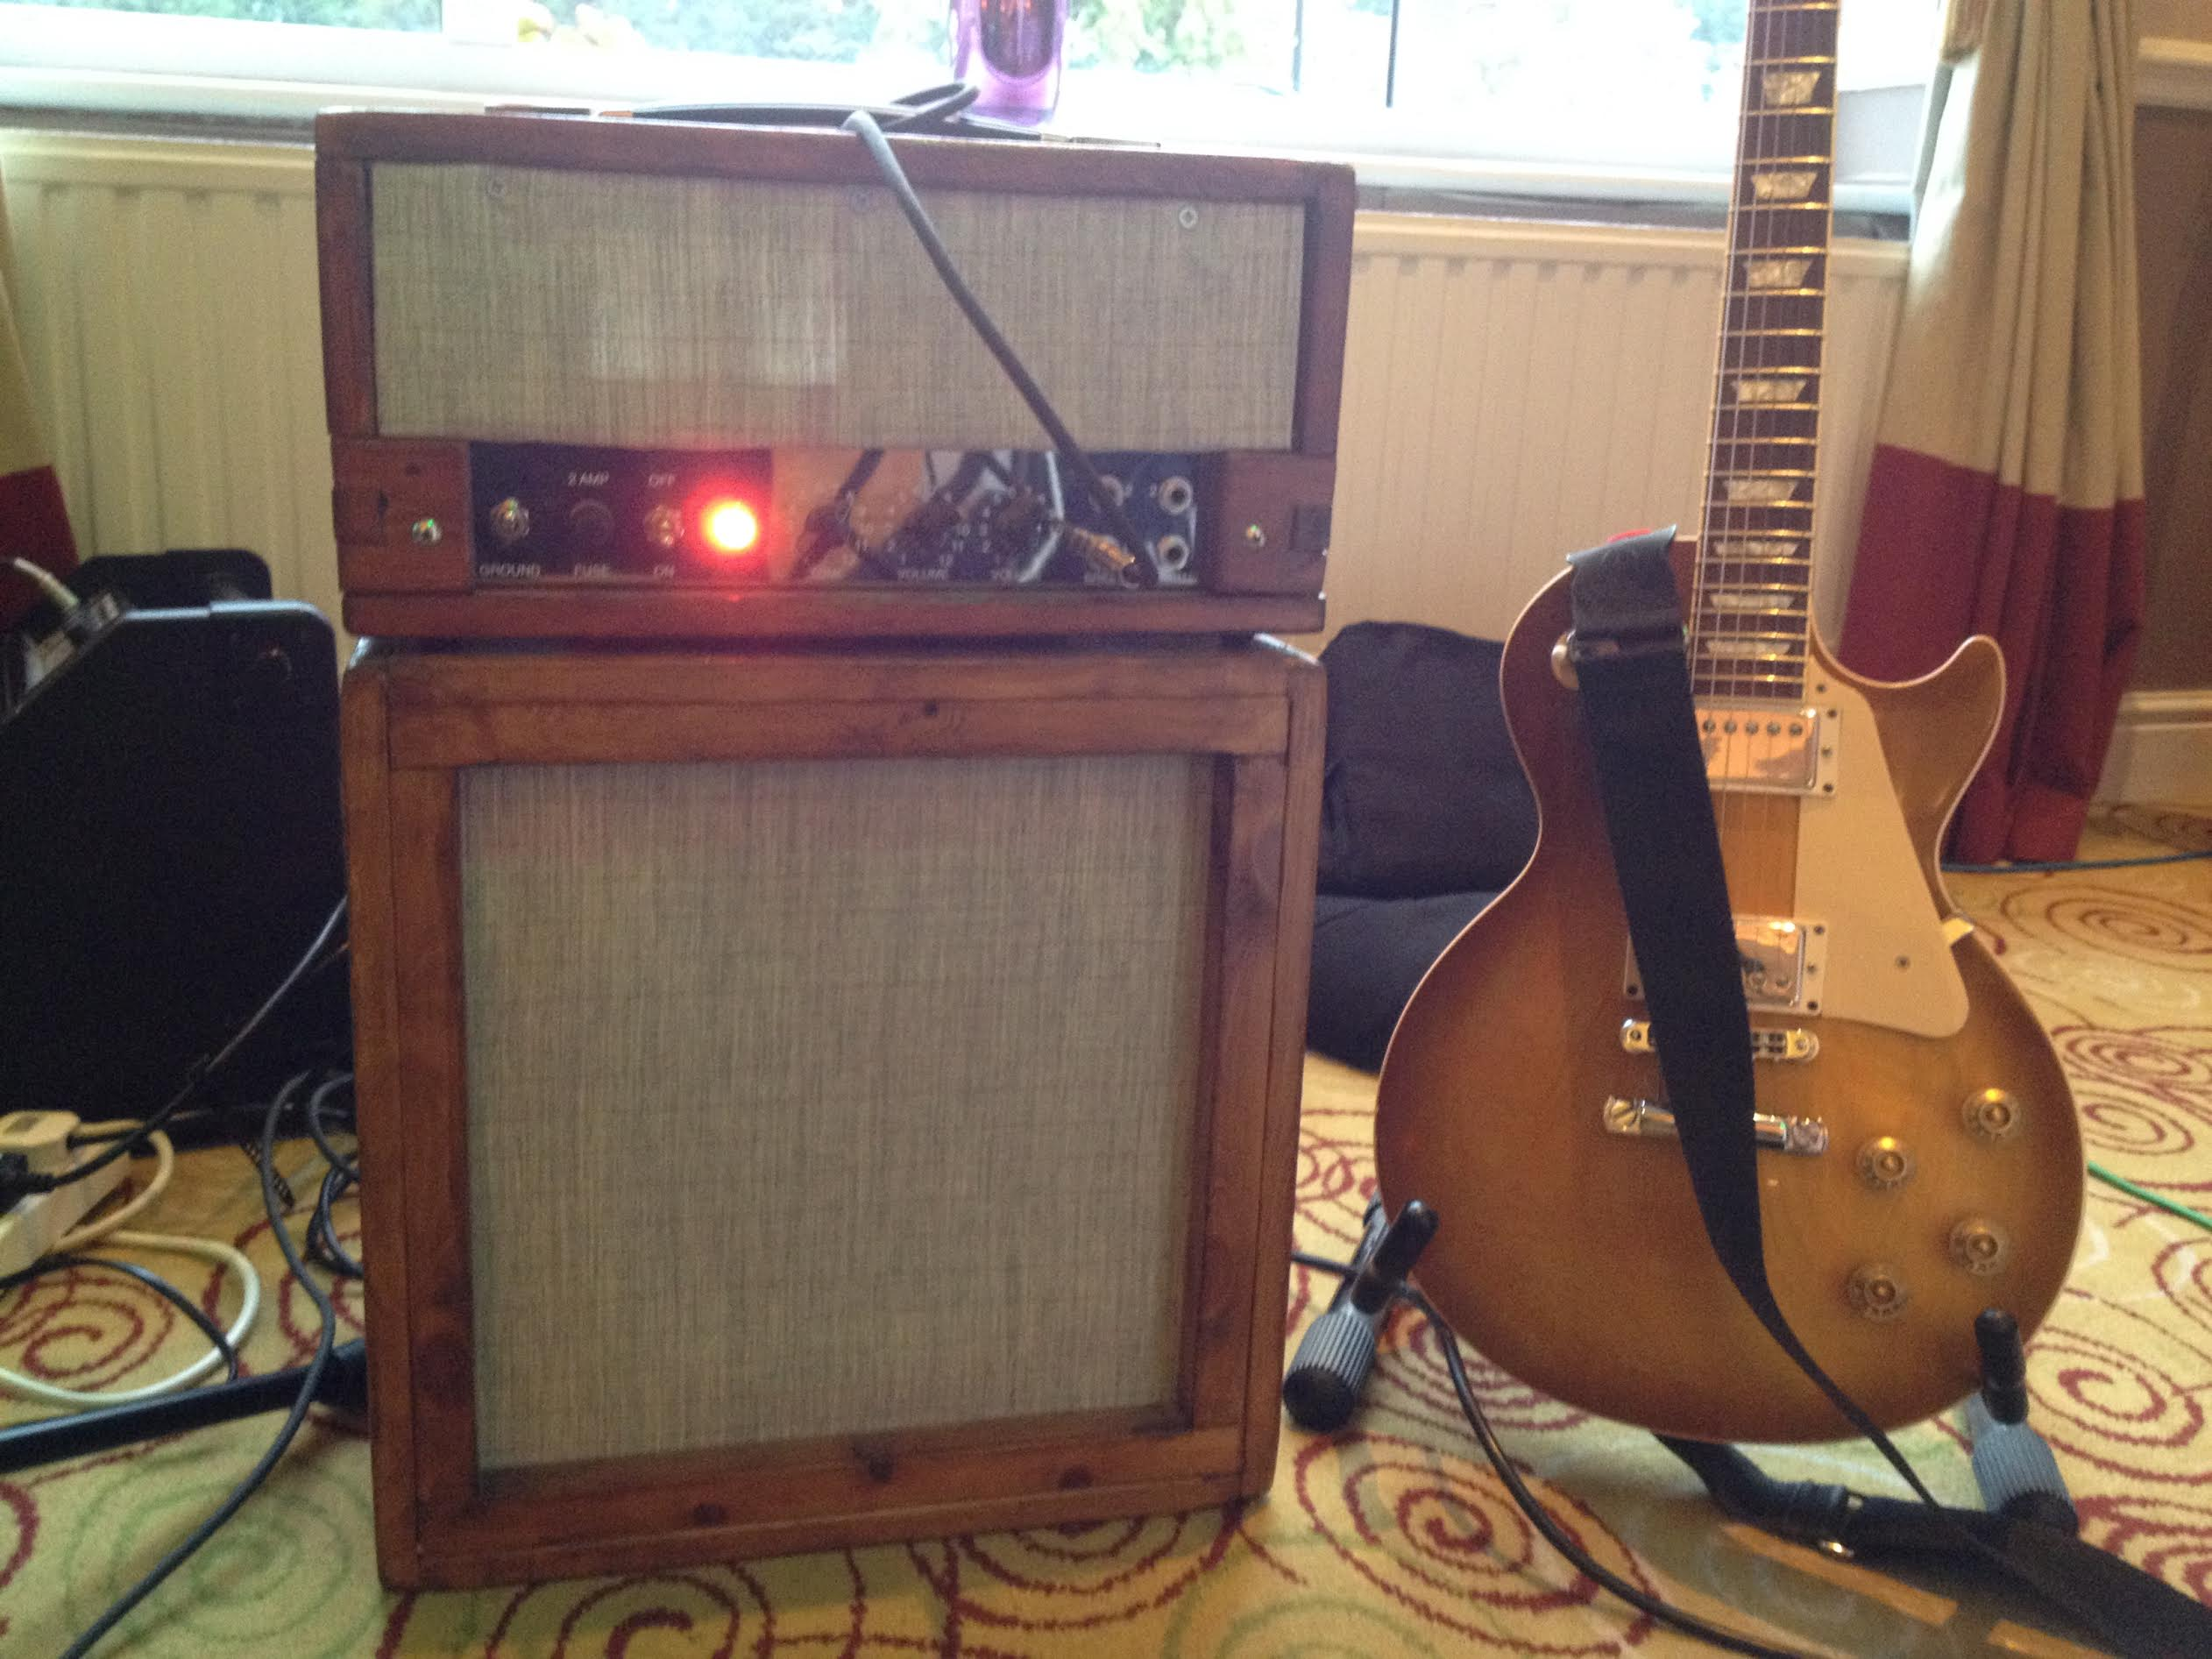 Welcome to tubedepot using it with a les paul my homemade tele and a 1937 cromwell archtop jimmy b buy this tweed 5e3 vacuum tube amp kit solutioingenieria Images